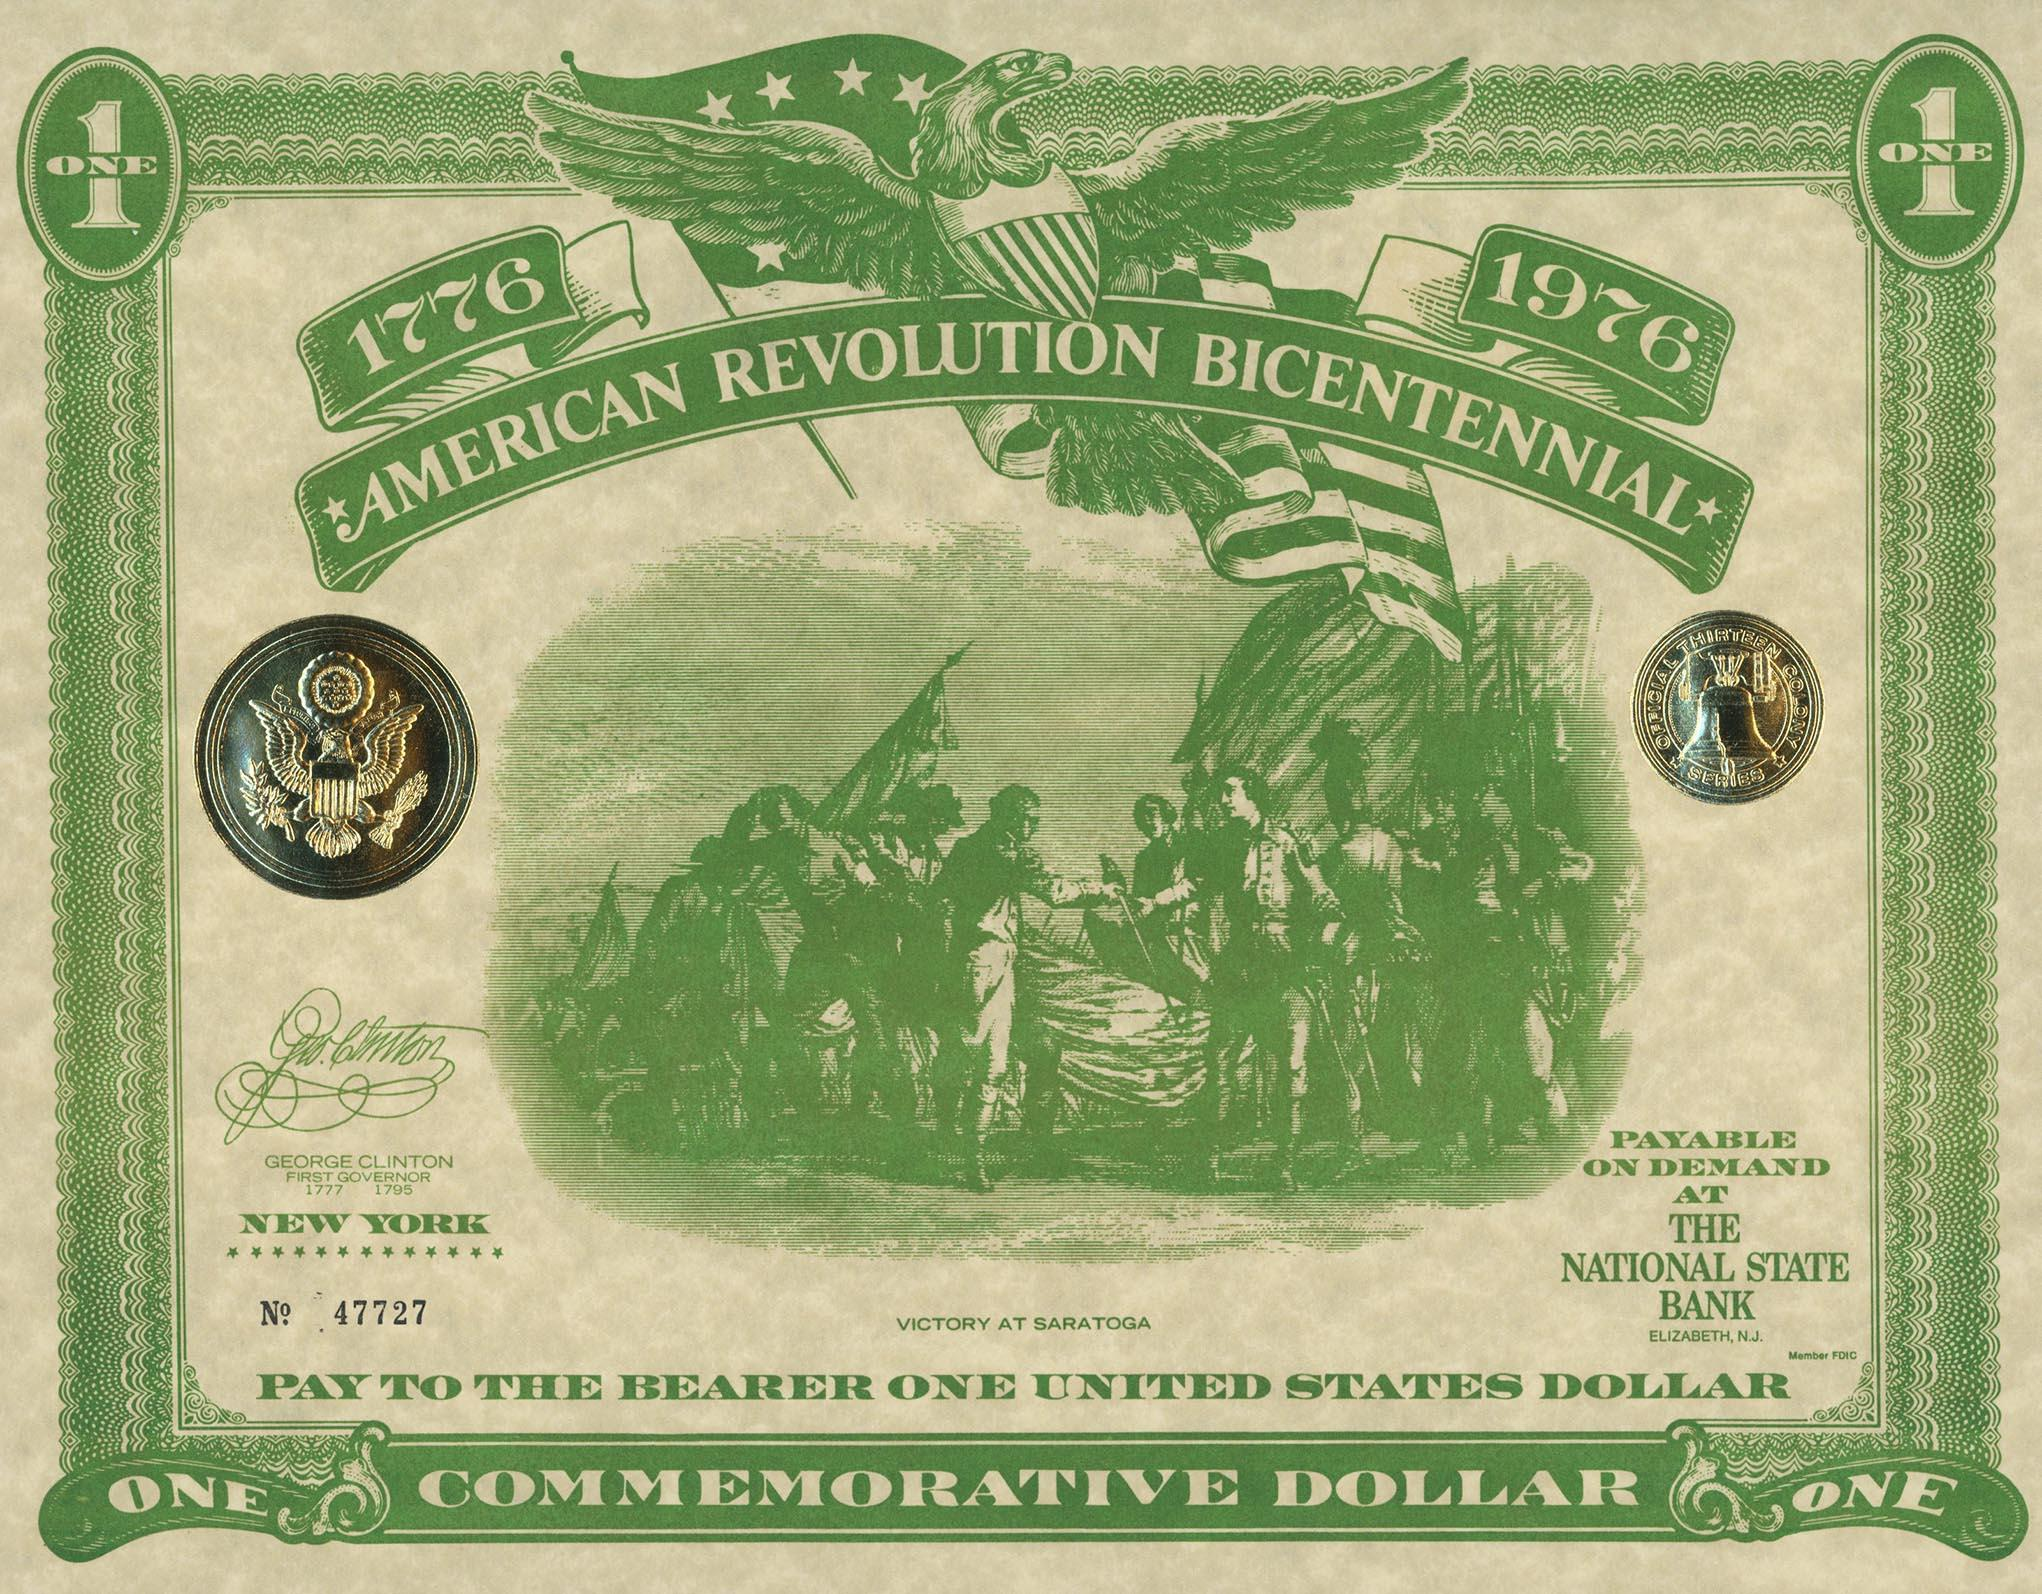 American Revolution Bicentennial Commemorative One Dollar Certificate/First Day Cover - New York